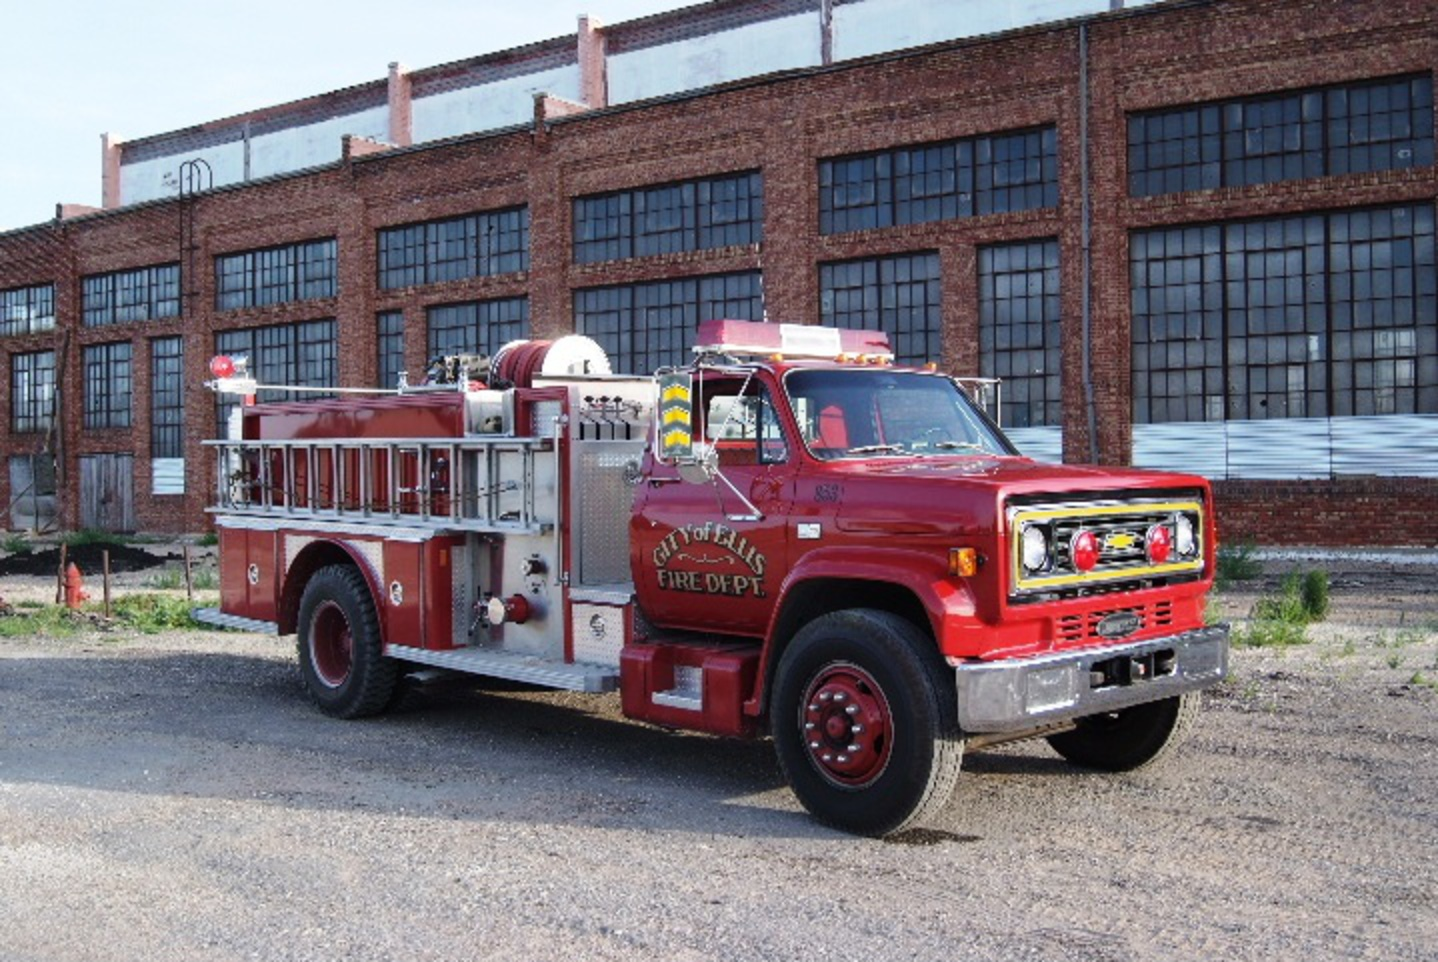 1928 LaFrance 1984 Chevrolet Fire Truck (For Sale - Contact 785-726-4812)